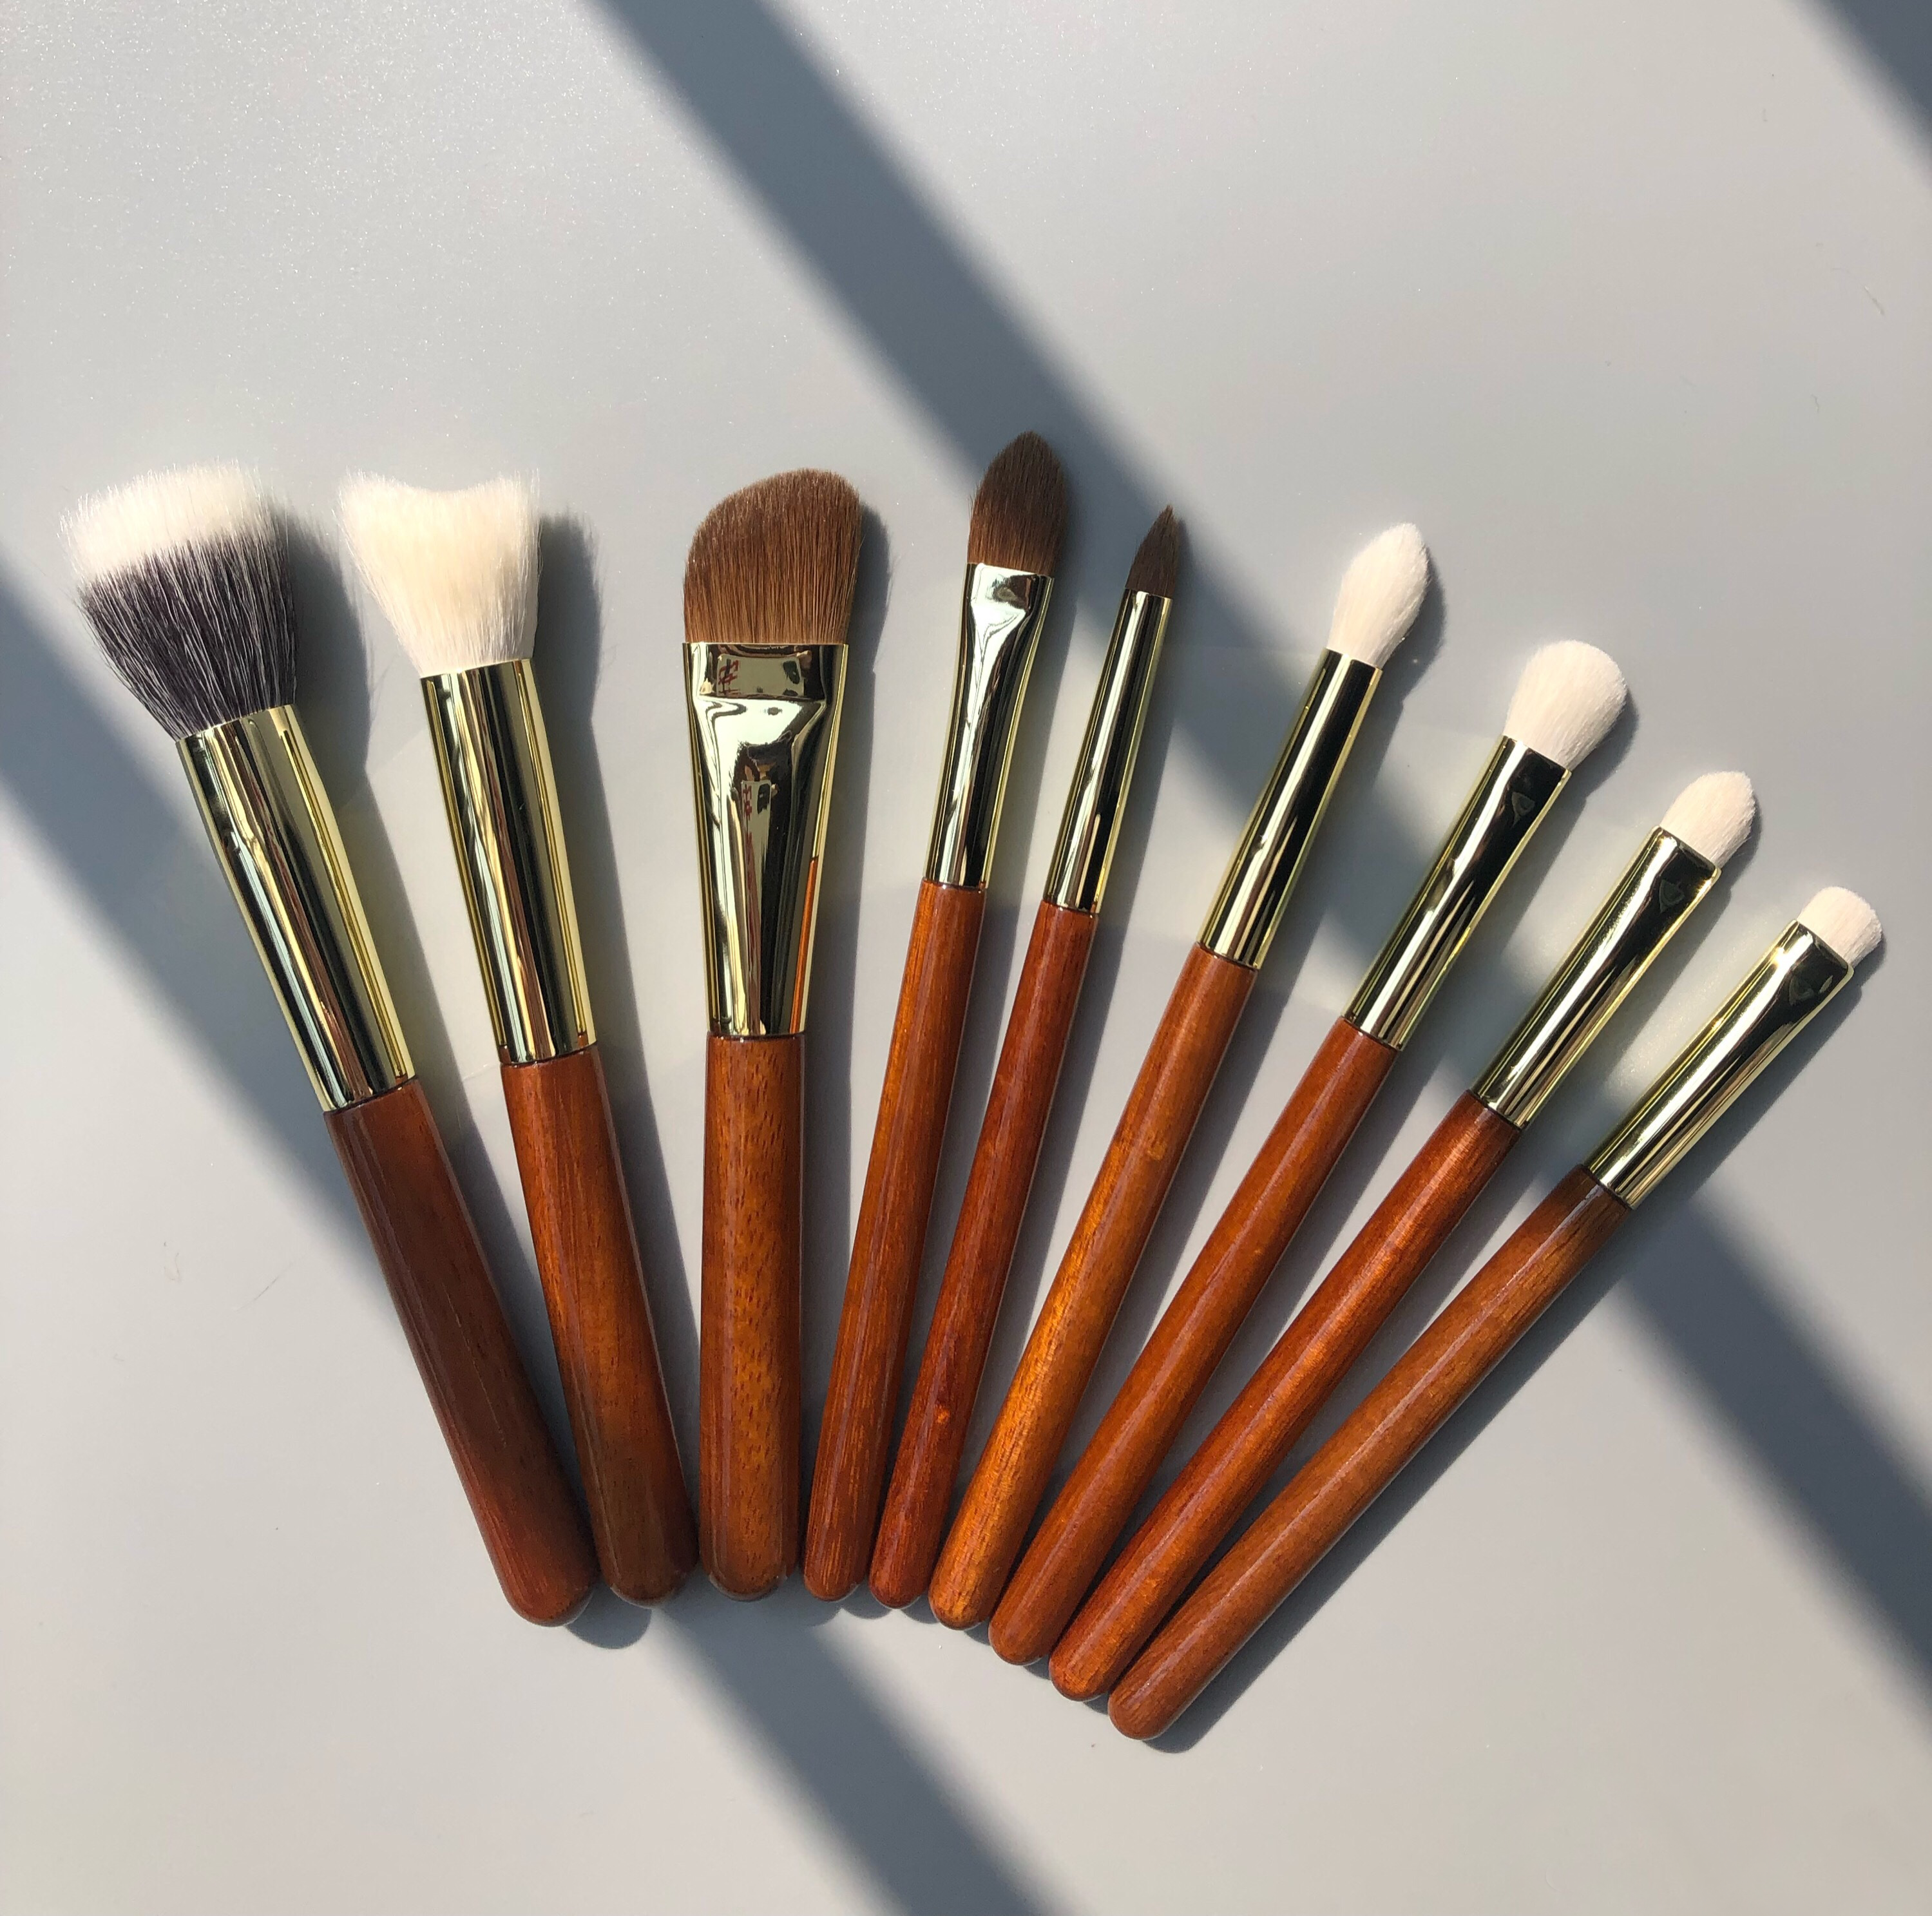 Vonira Makeup Brushes OEM/ODM Factory (Your Own Brand